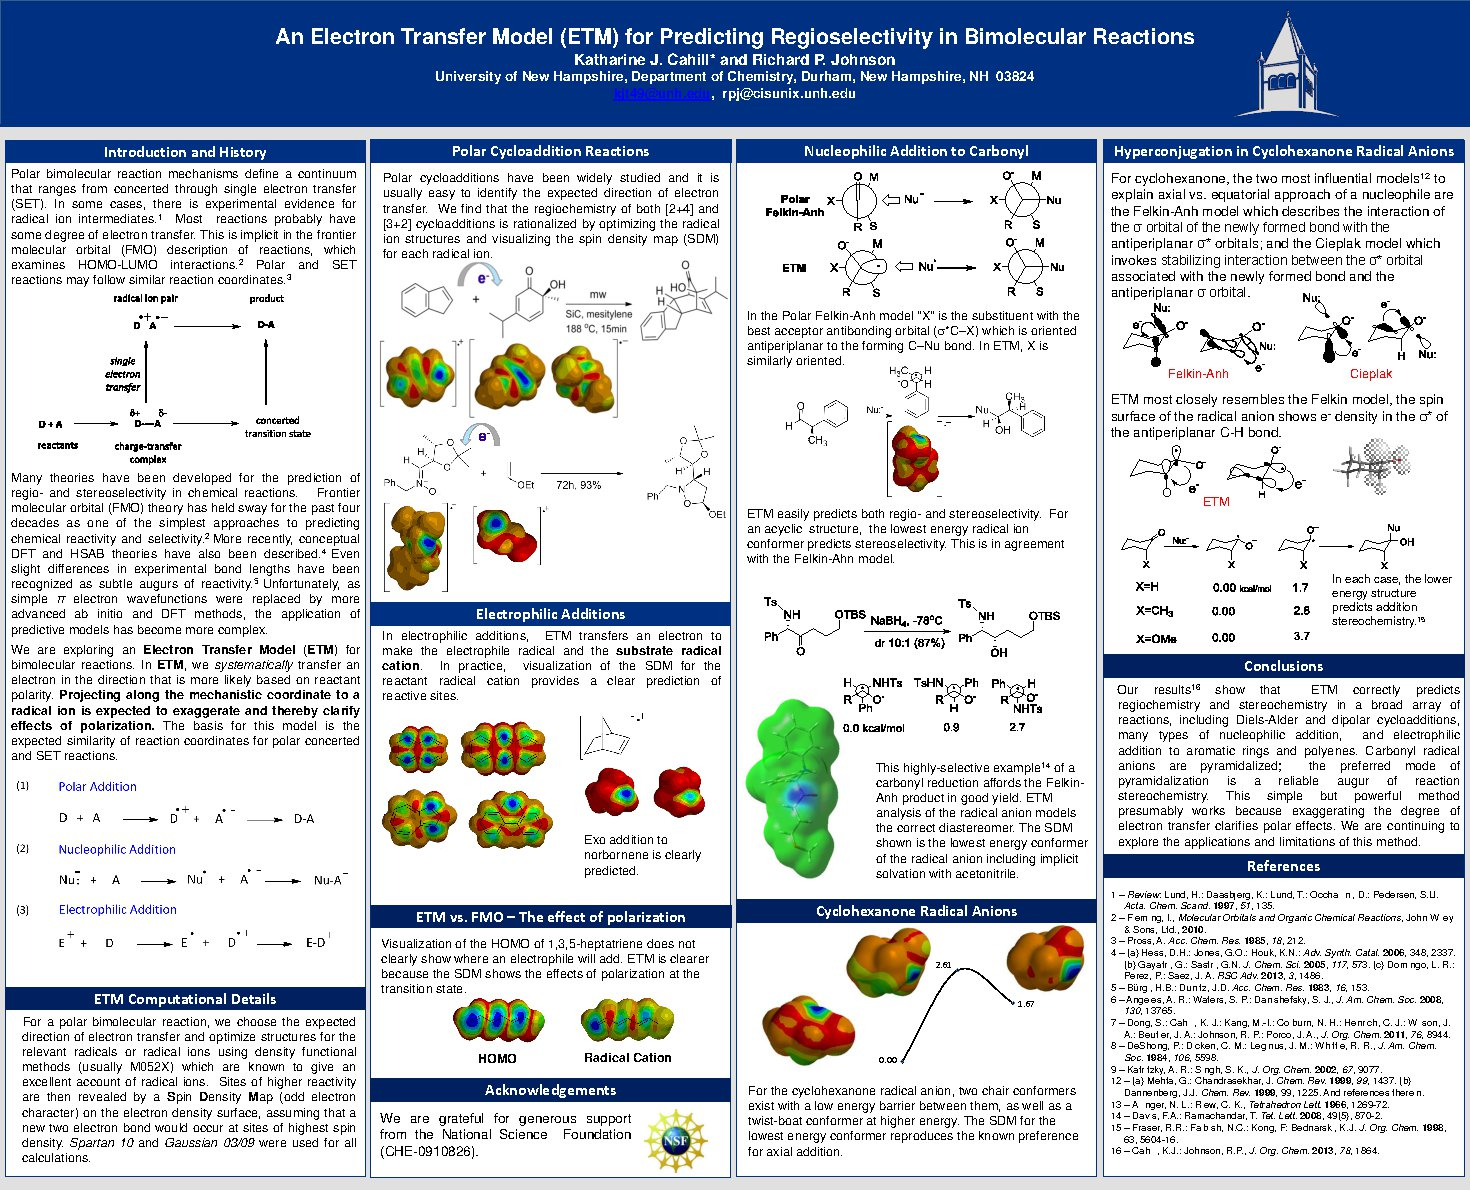 An Electron Transfer Model (Etm) For Predicting Regioselectivity In Bimolecular Reactions by kjt49